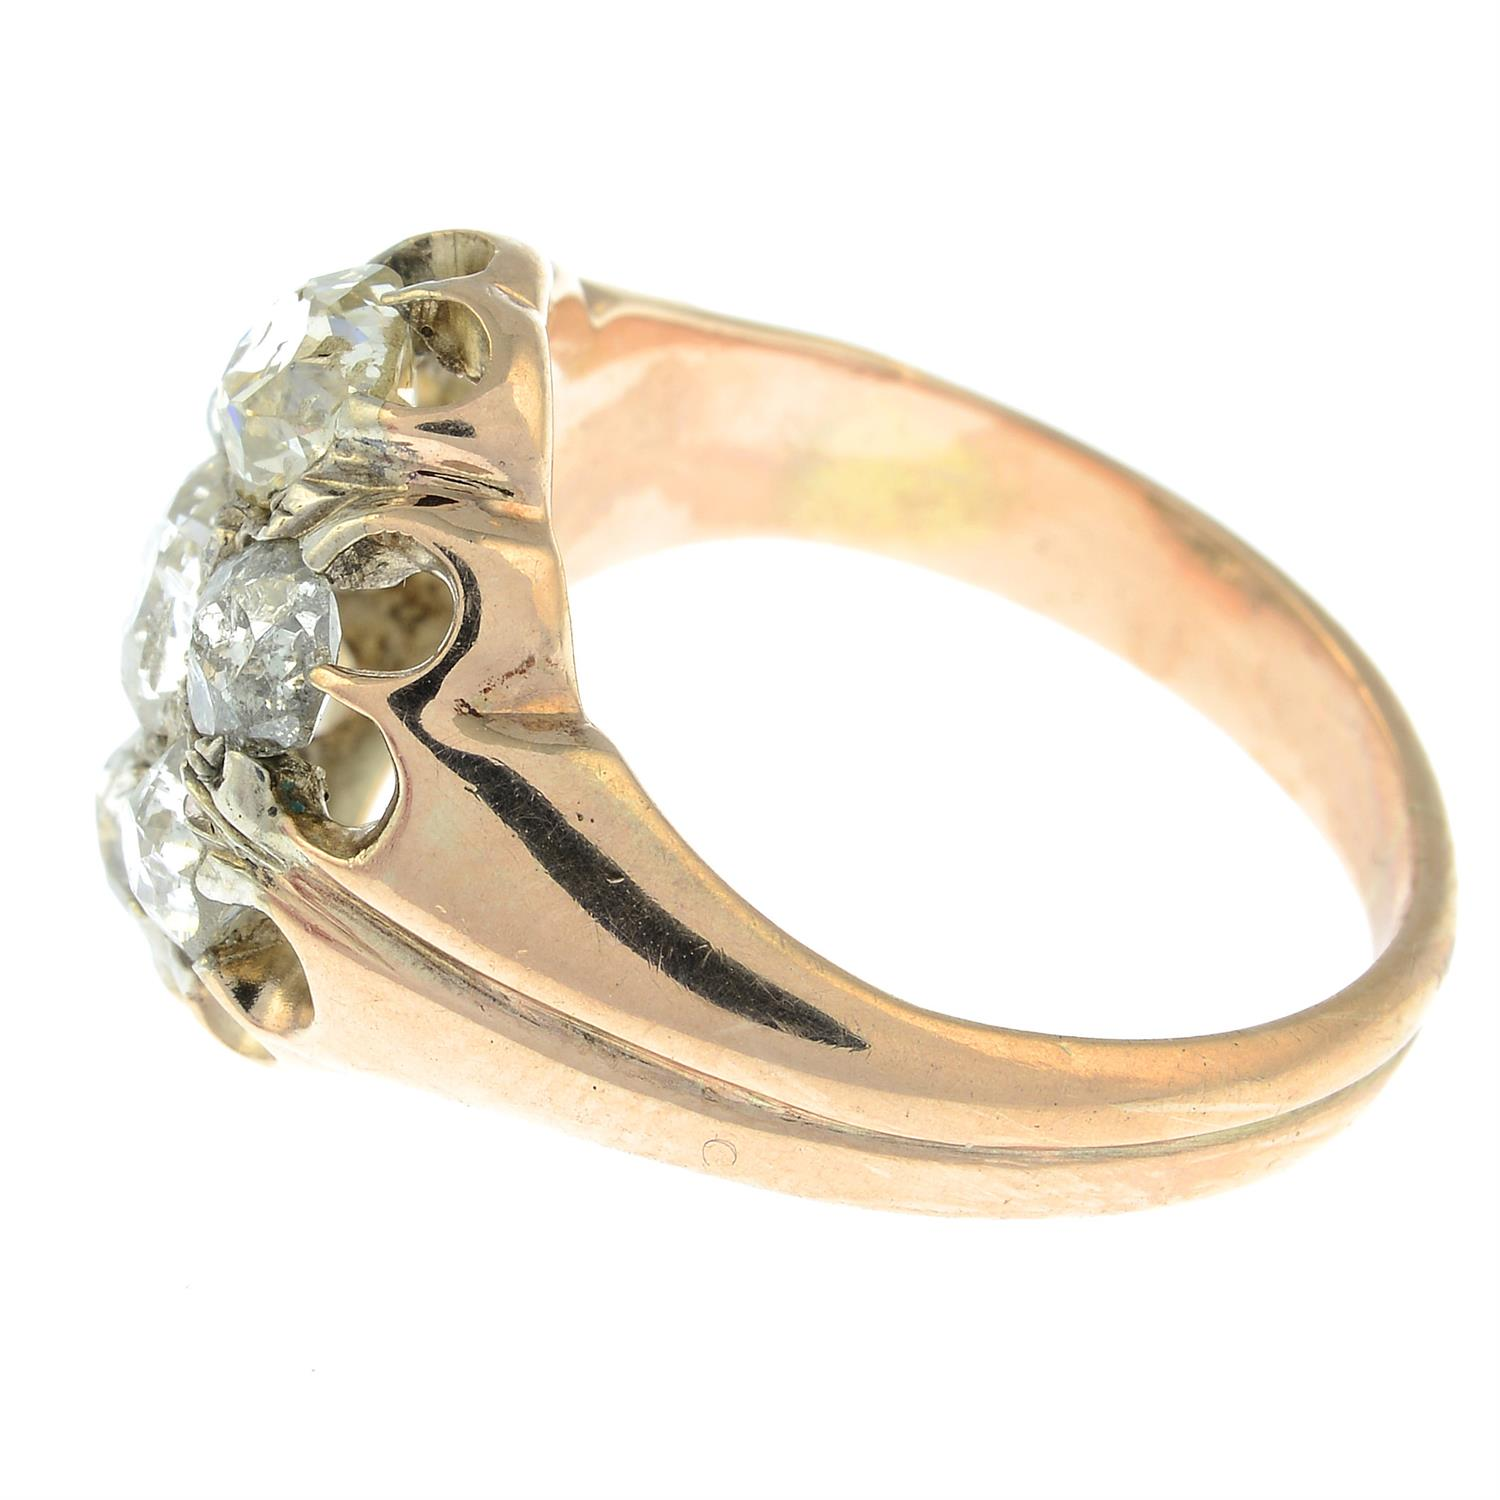 An early 20th century 9ct gold old-cut diamond cluster ring. - Image 3 of 6